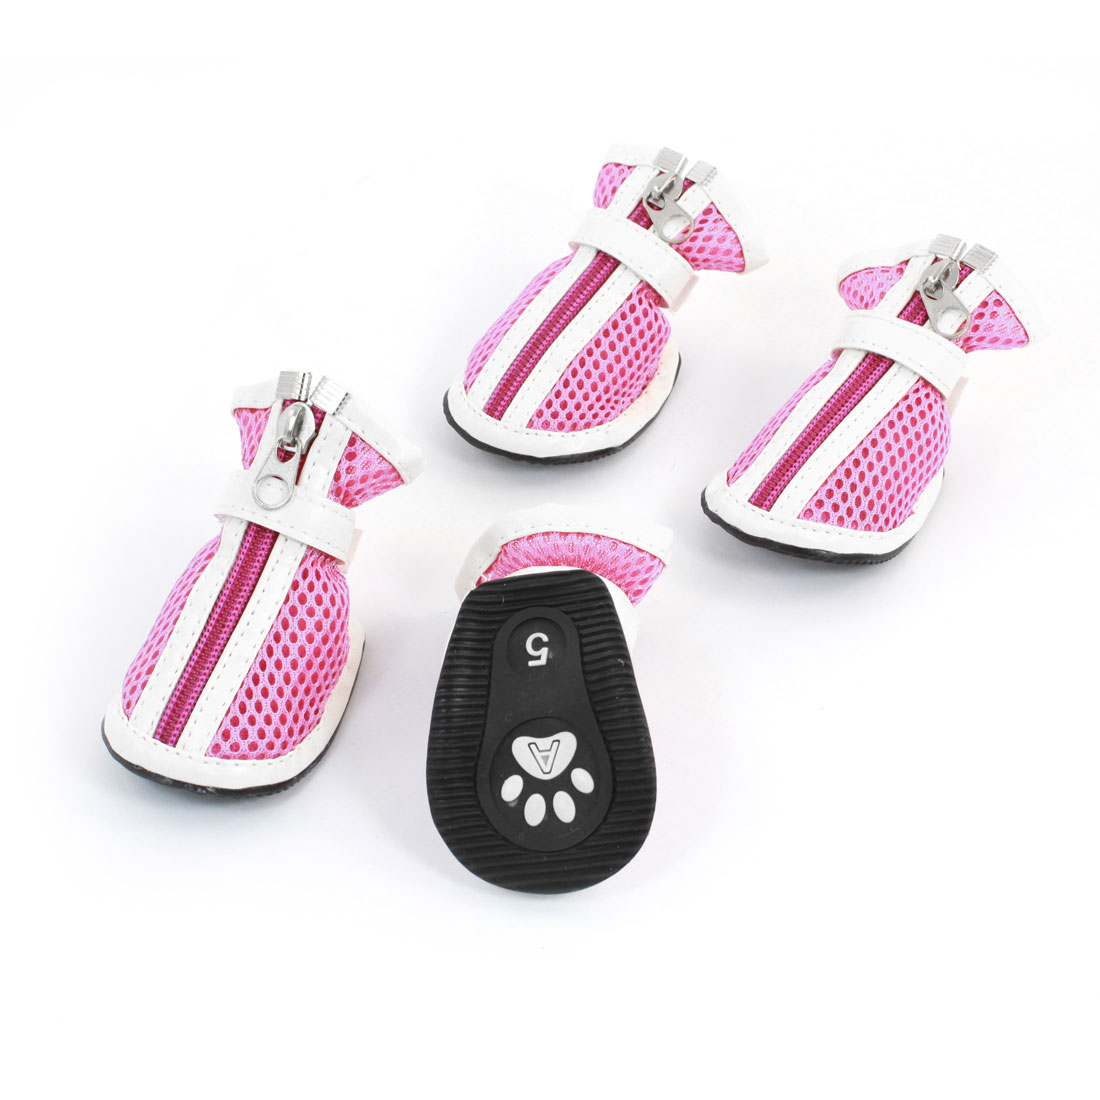 2 Pair Pet Dog Doggy Hook Loop Fastener Zip Closure Mesh Style Shoes Boots Booties Pink White Size XS